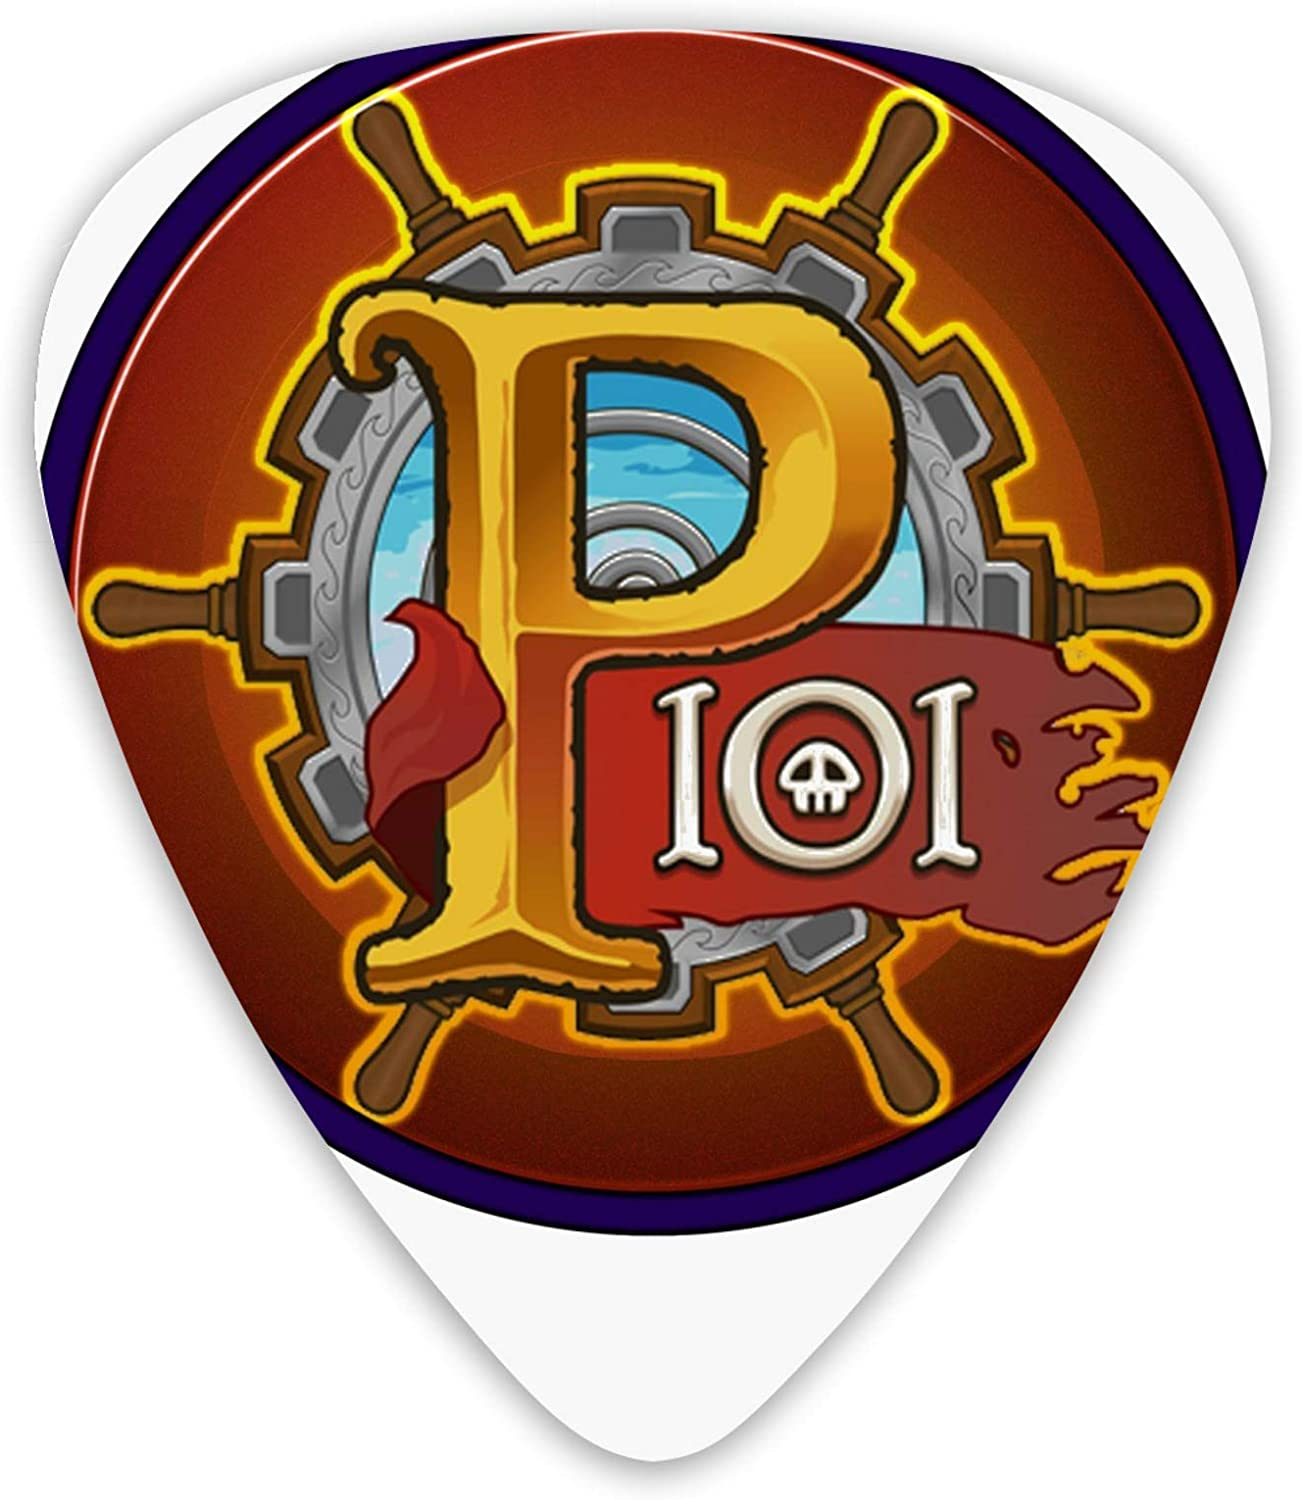 Carulest Wizard101 351 Shape Ranking TOP3 Premium Pack For Large discharge sale 12 Picks Electri